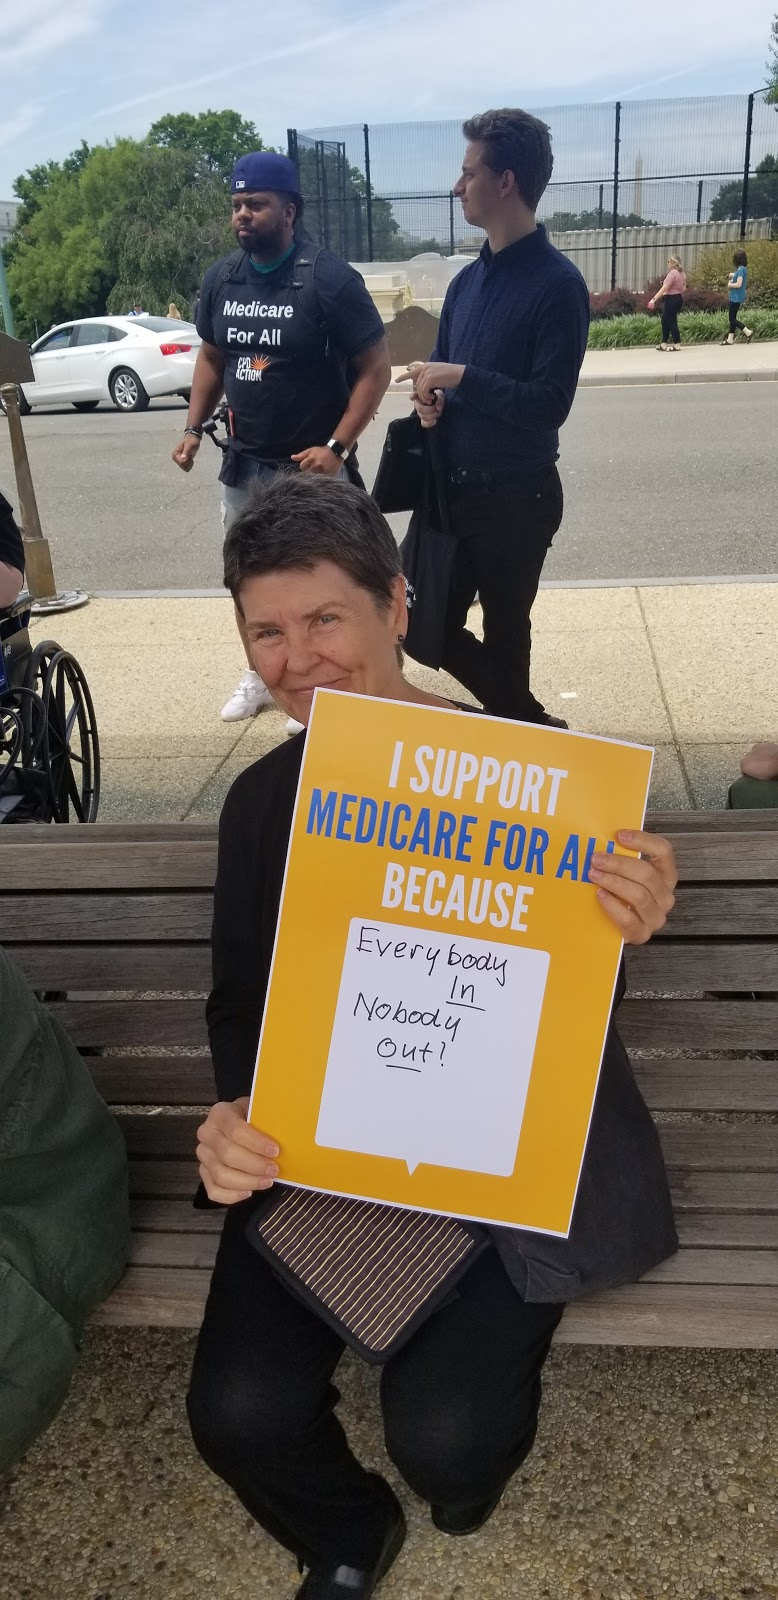 Medicare for All supporter with a sign